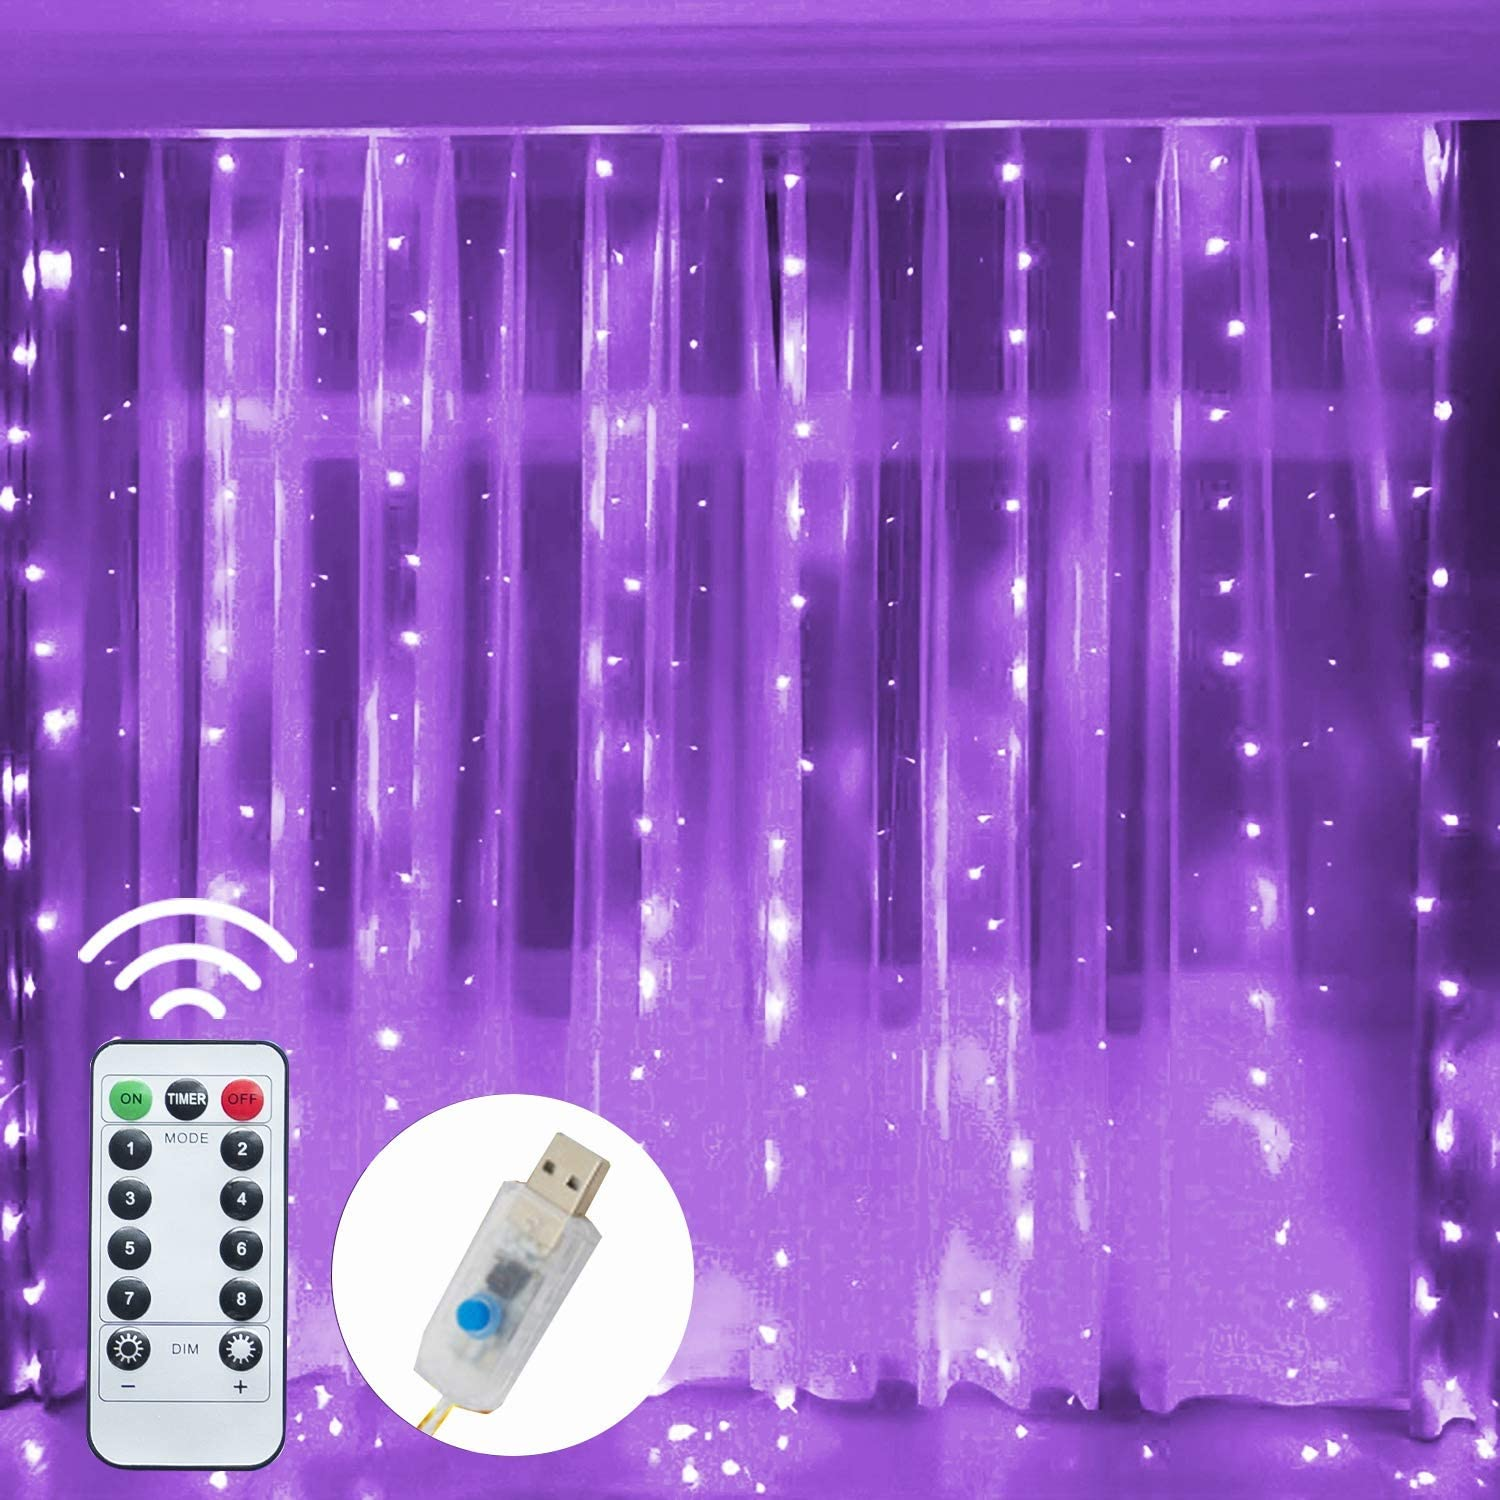 Funpeny Window Curtain String Light, 300 LED 8 Lighting Modes Fairy Lights Remote Control USB Powered, Waterproof Lights for Christmas Bedroom Party Wedding Home Garden Wall Decorations, Purple